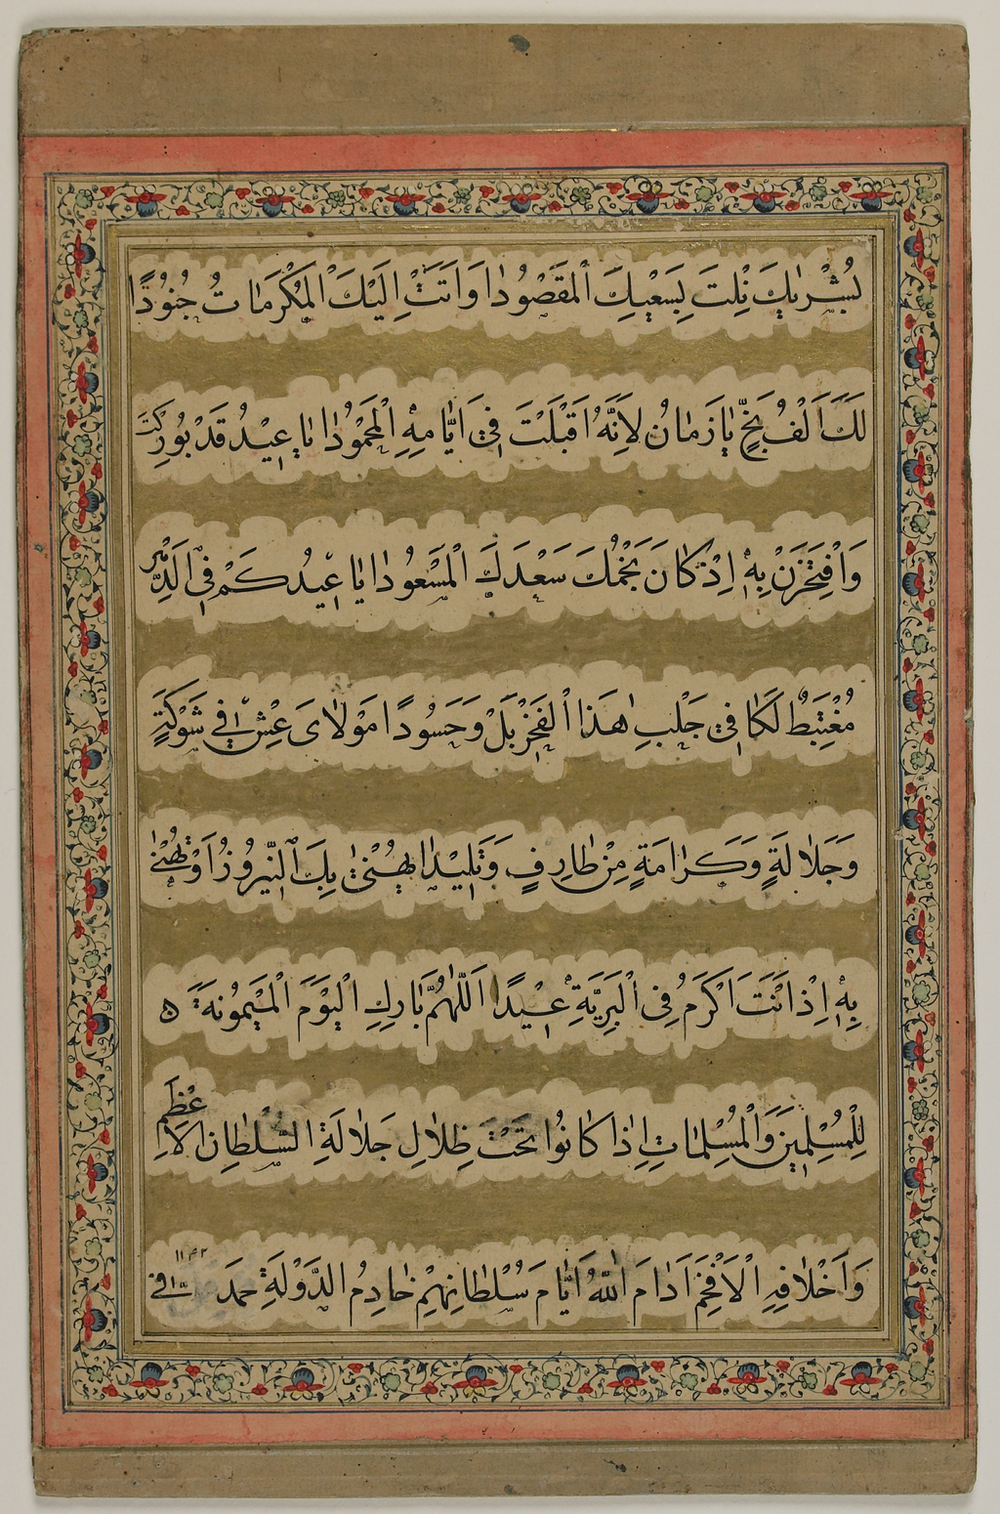 This calligraphic fragment provides Arabic blessings to a ruler on the occasion of Eid.